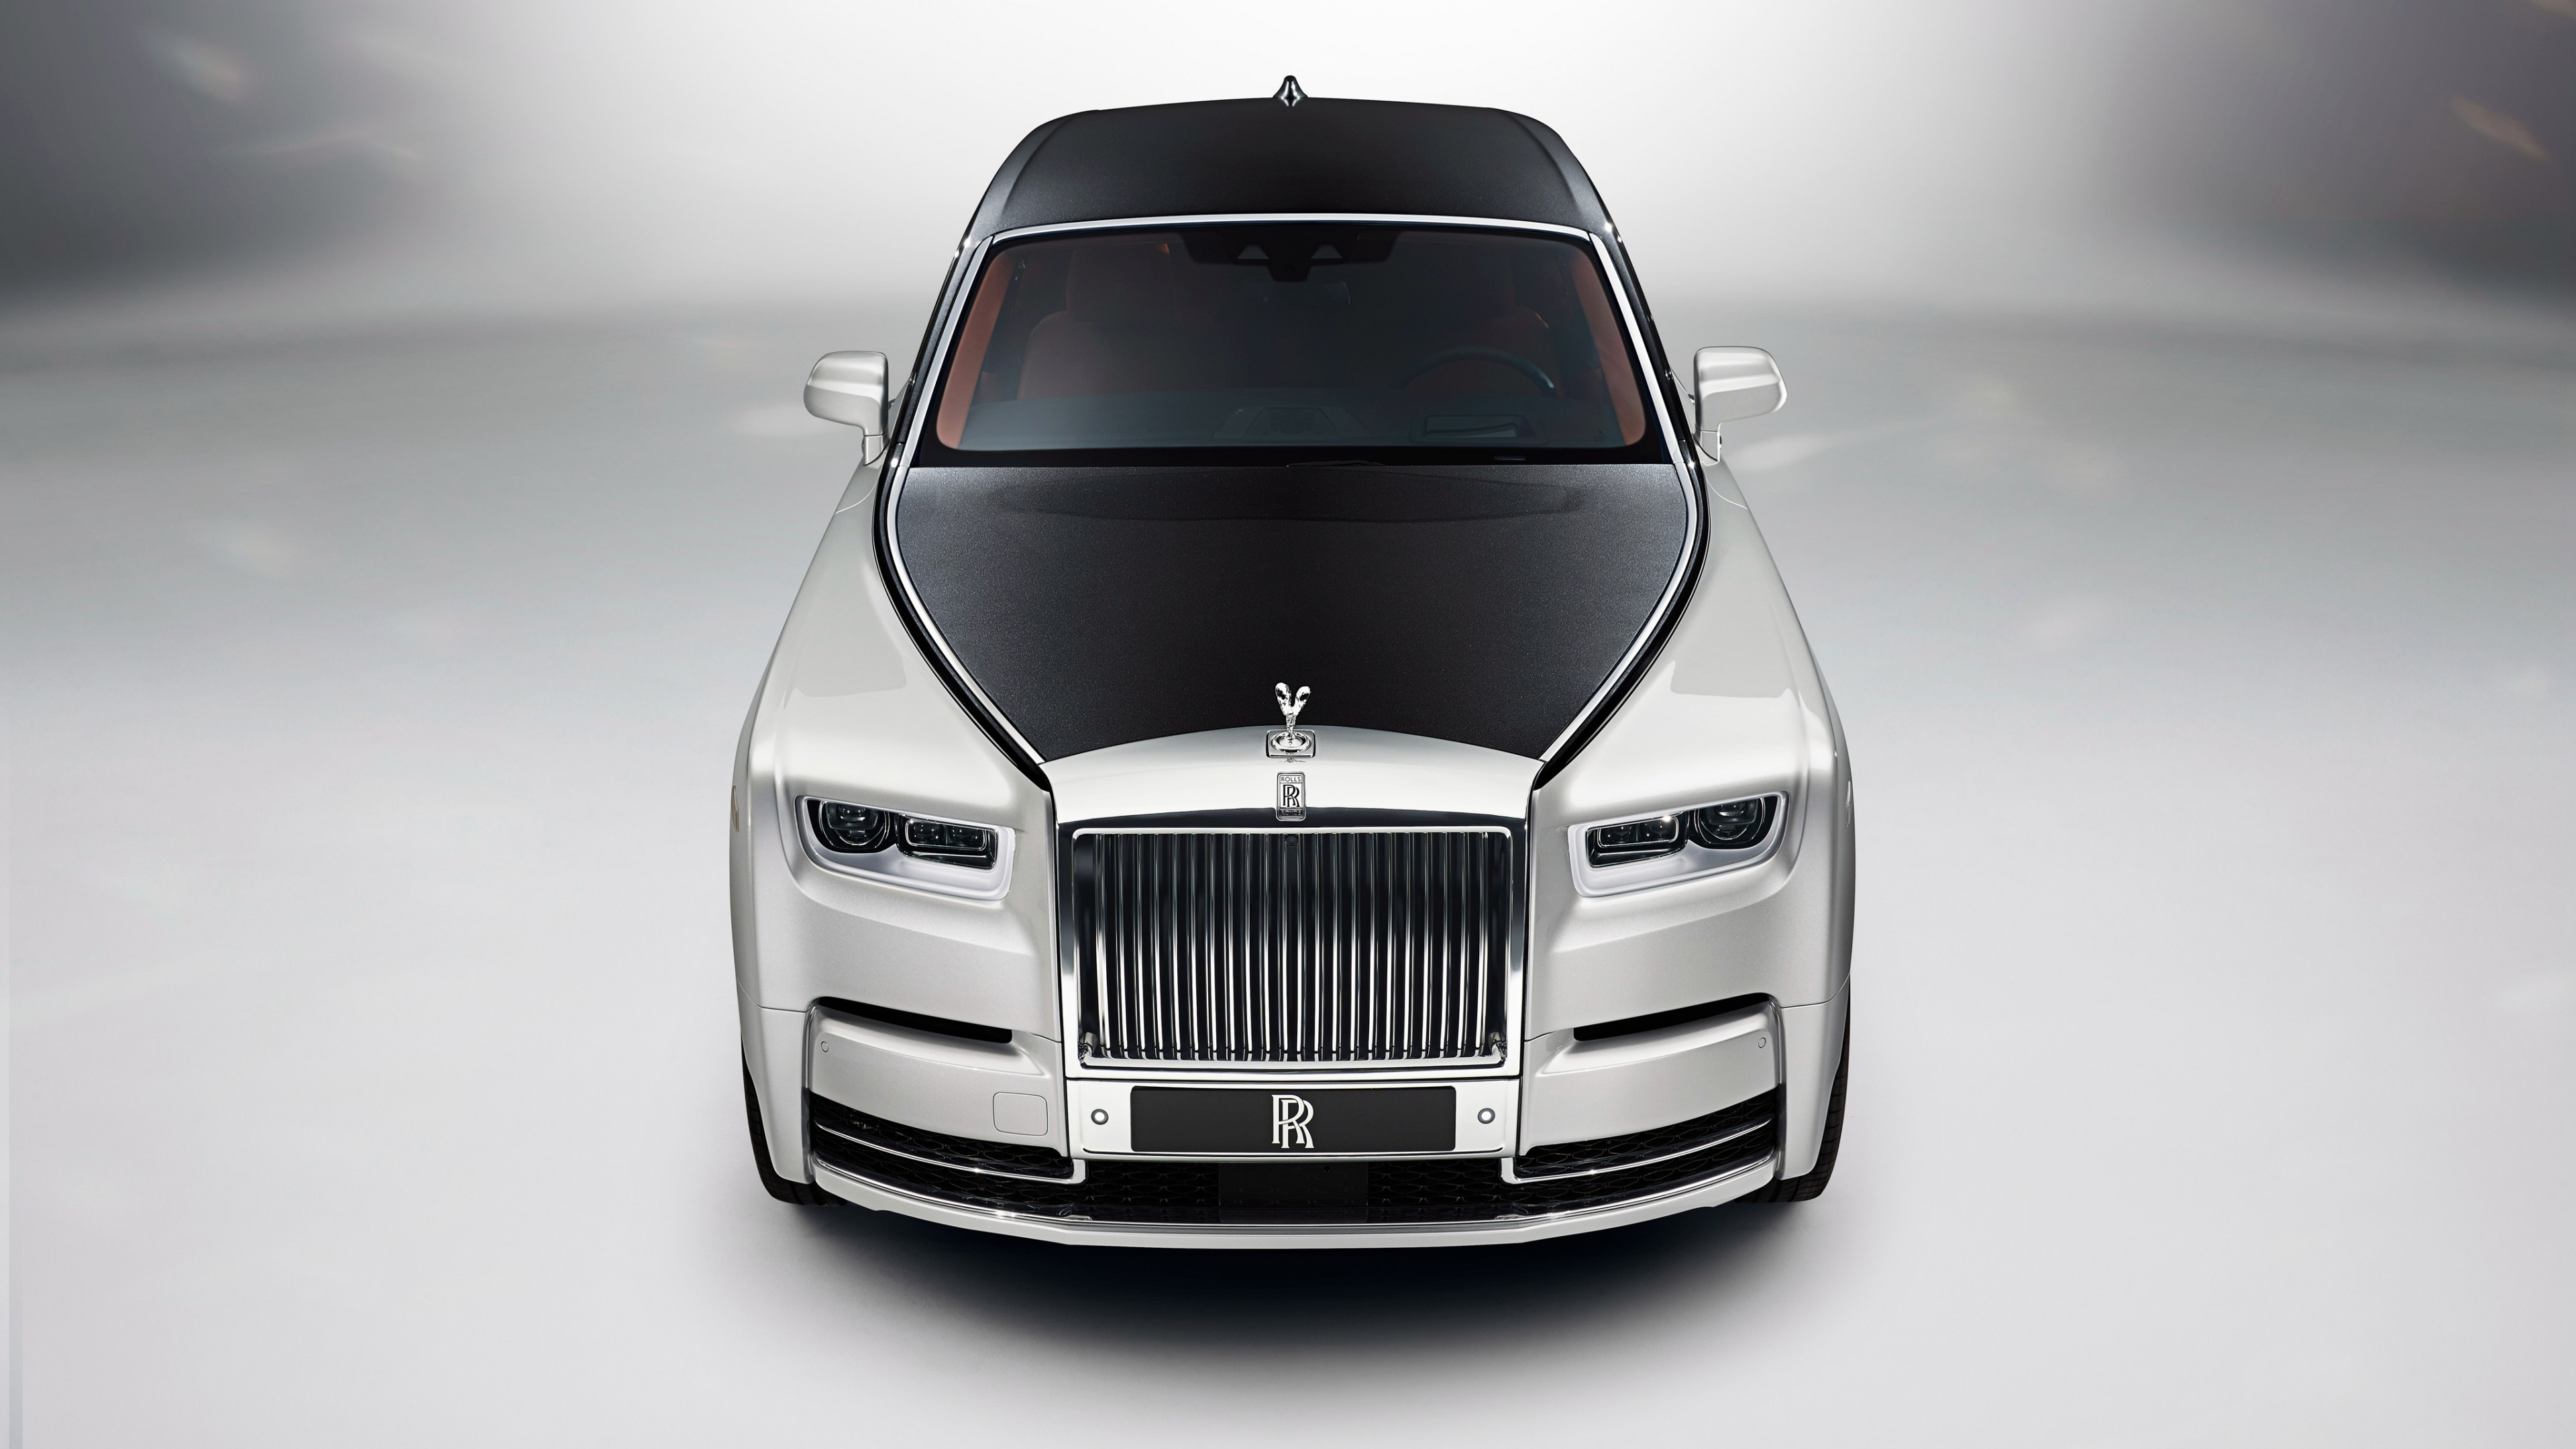 2017 rolls royce phantom 3 wallpaper hd car wallpapers id 8128. Black Bedroom Furniture Sets. Home Design Ideas